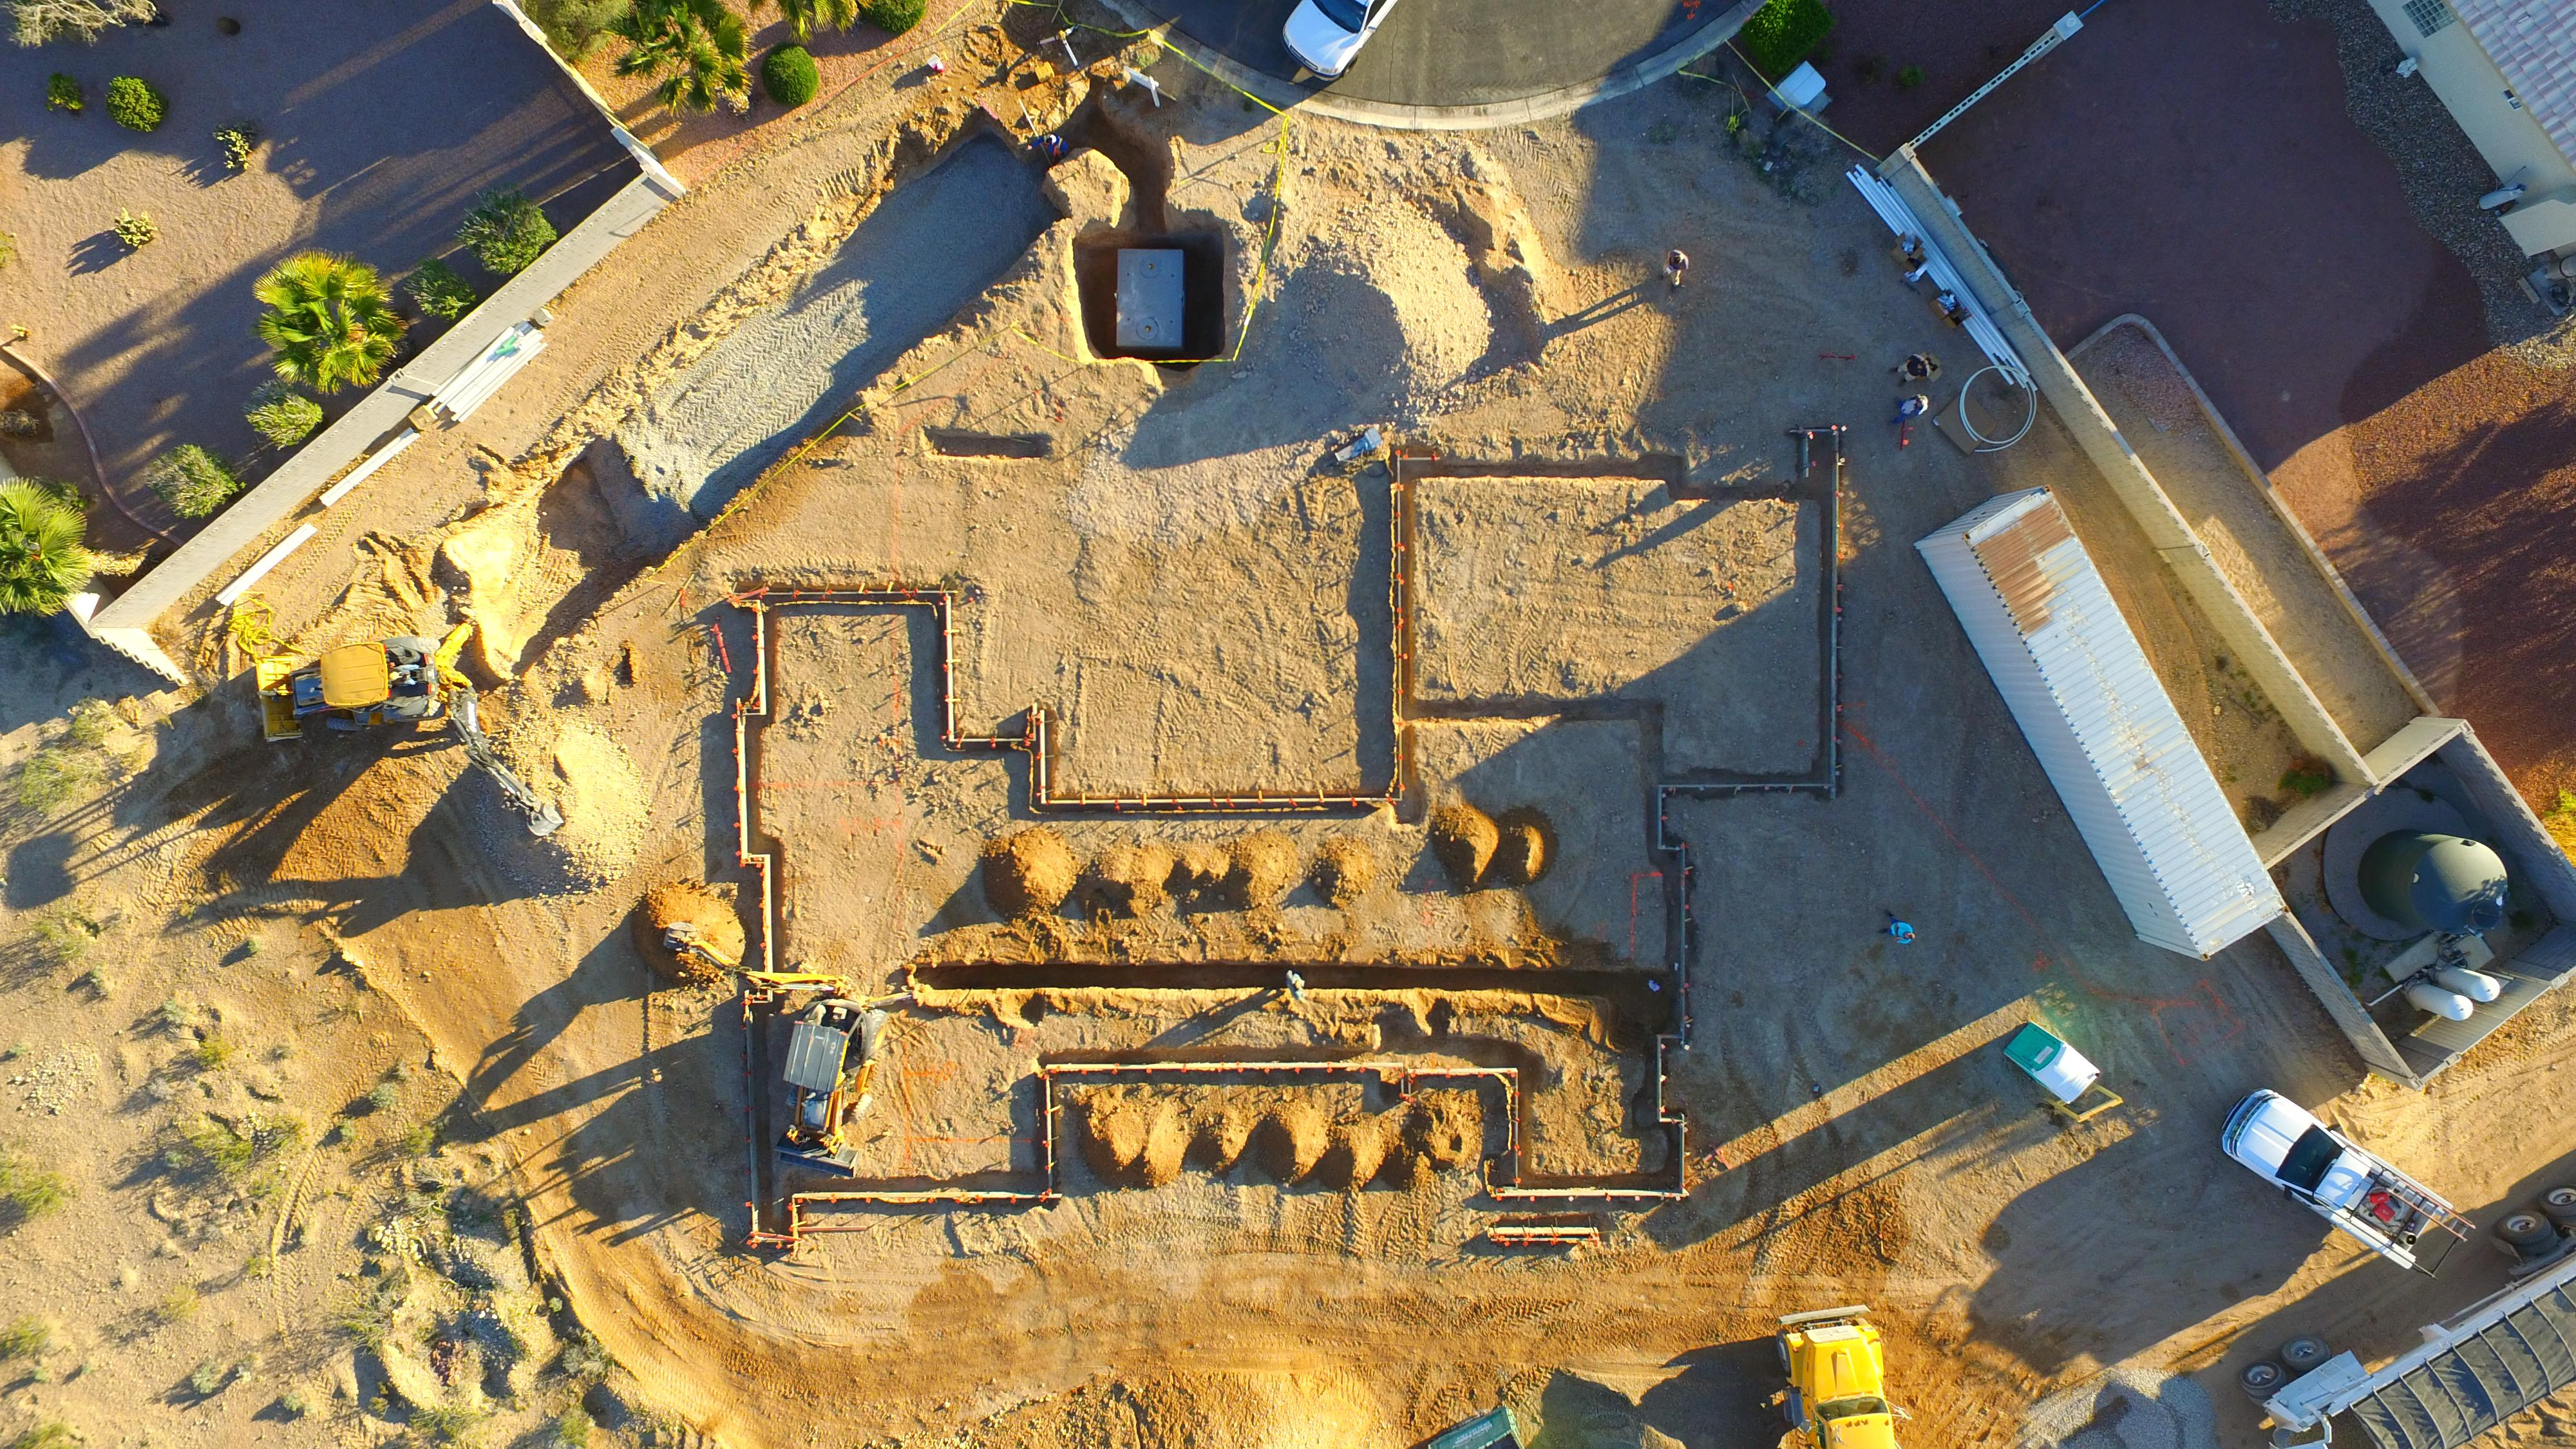 Twelve days into the construction of the St. Jude's Dream Home. . Photo taken by drone on 3/13/2017.  Tickets for a chance to win the home available Wednesday, August 2, 2017 at DreamHome.org (or call 800-378-5386)  (Photo Courtesy Element Building Company)